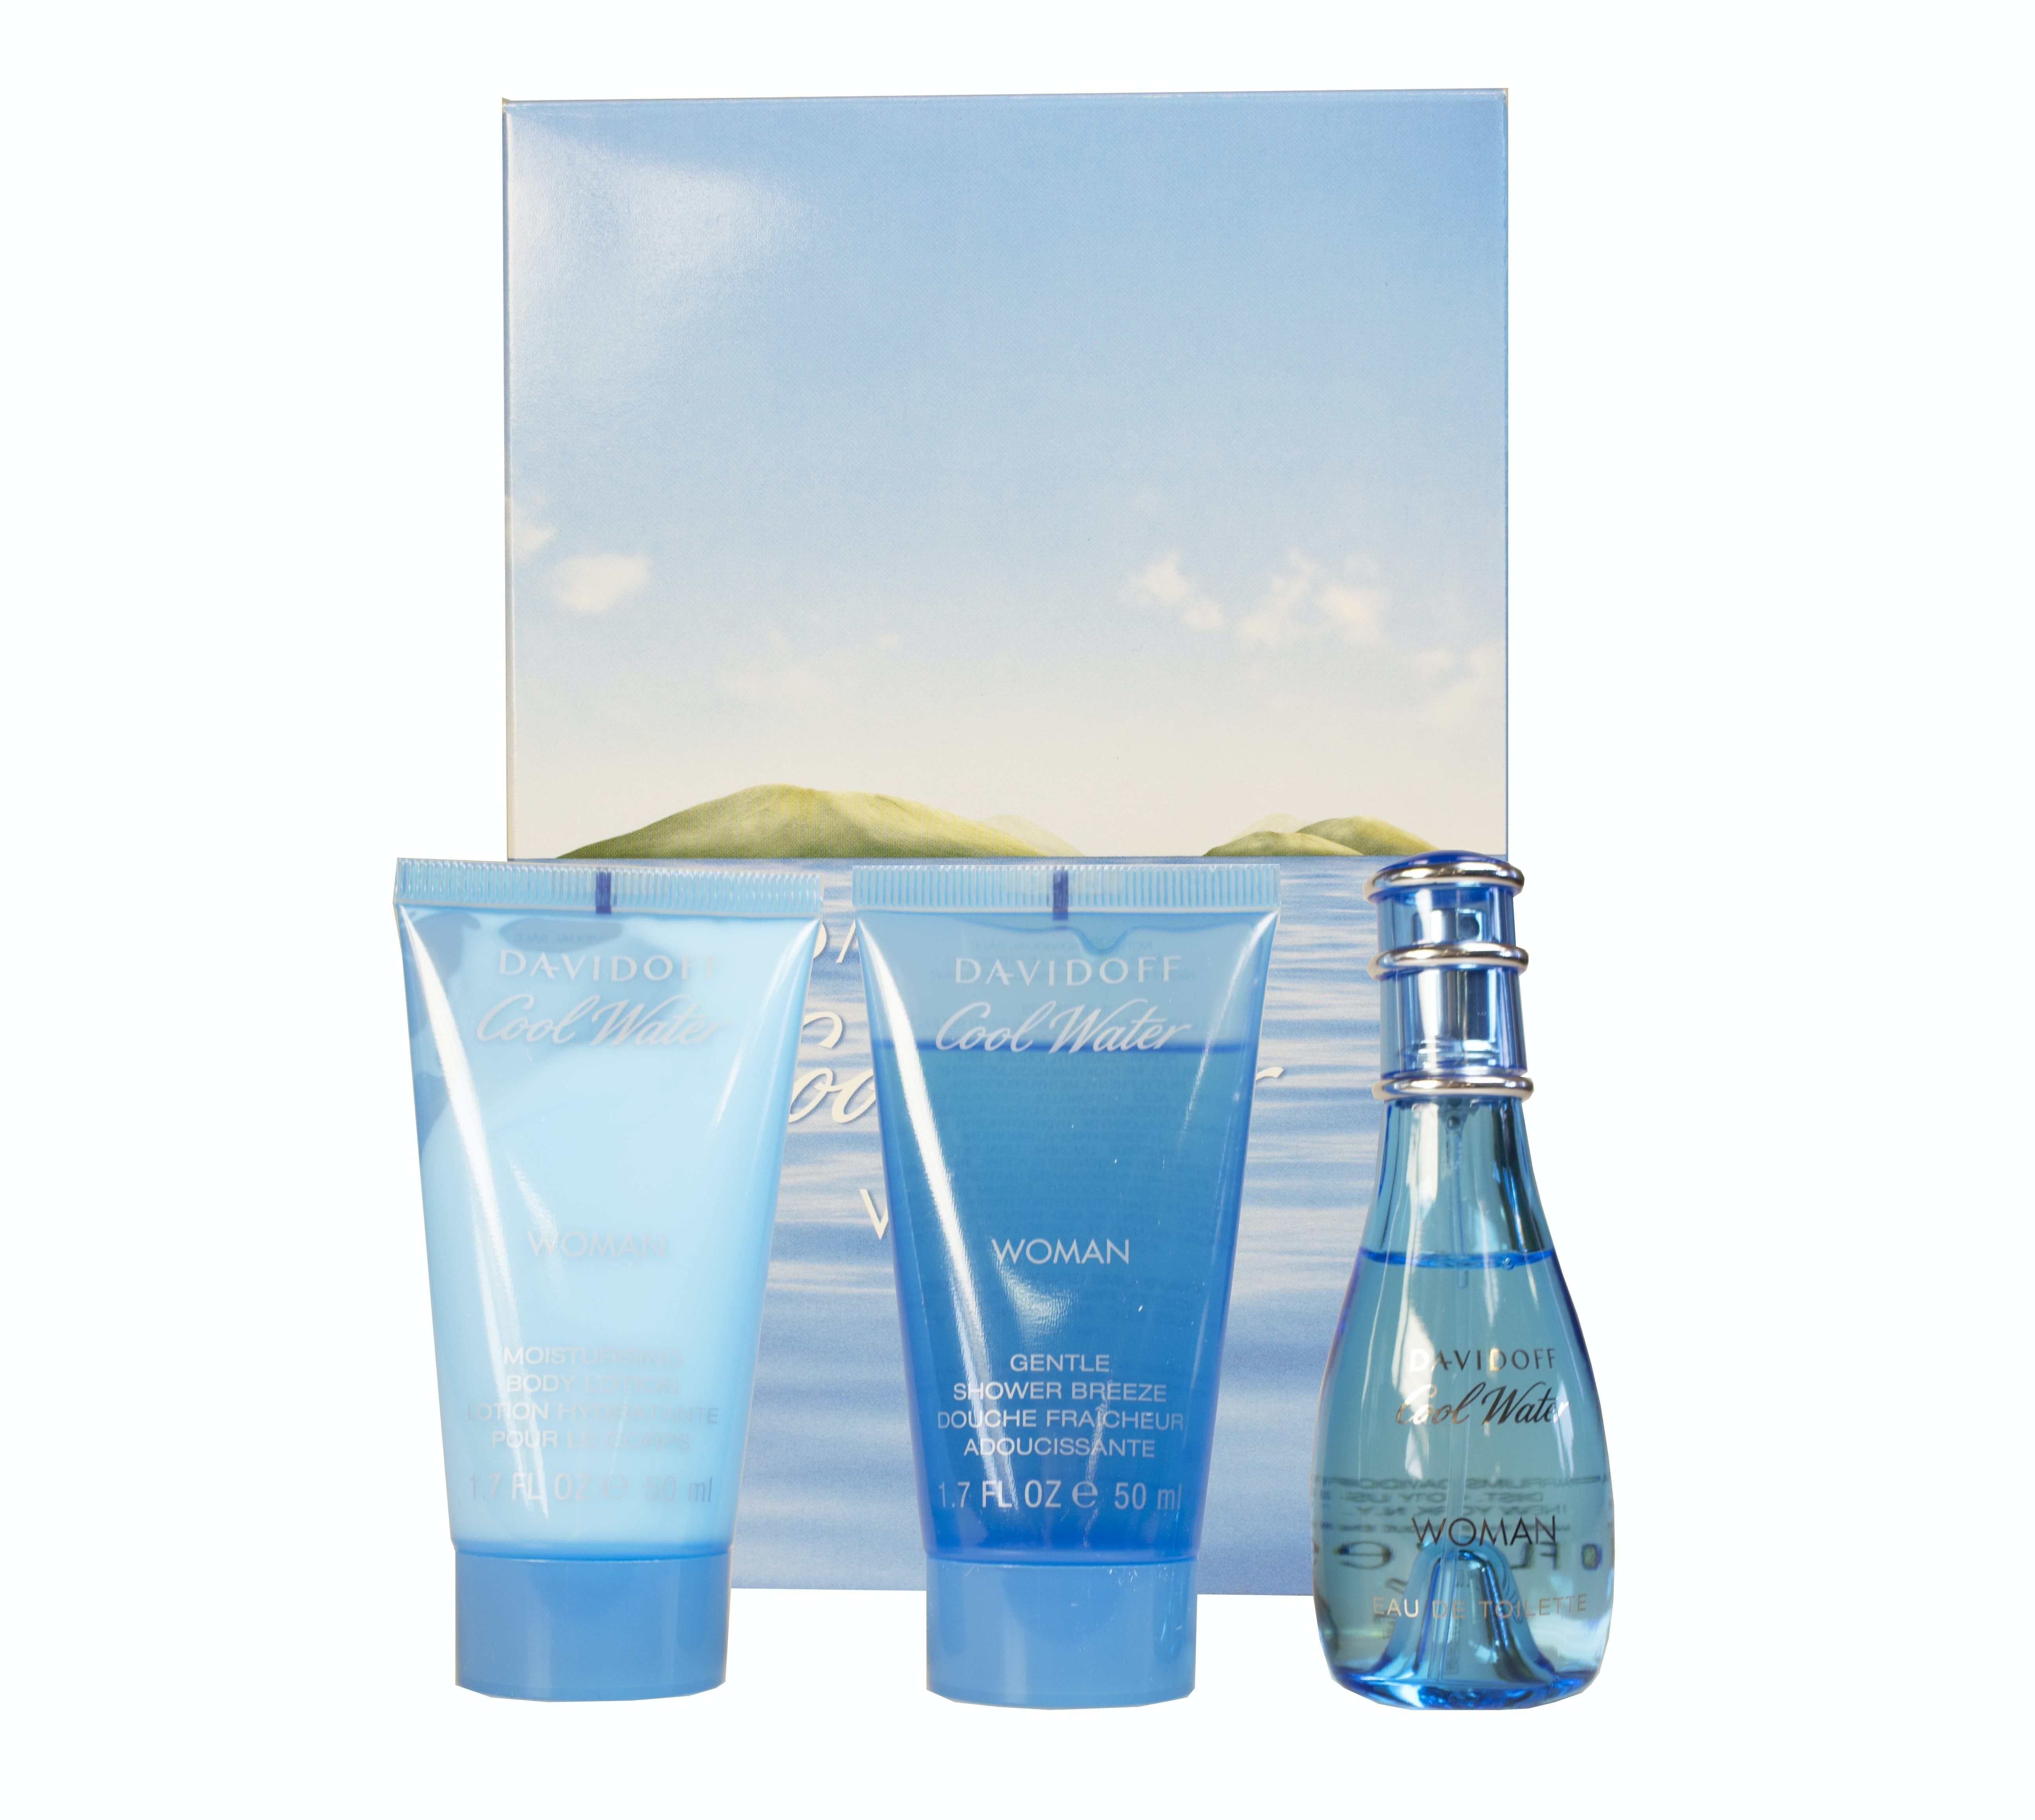 Davidoff Coolwater Woman 30Ml Eau De Toilette And 50Ml Shower Gel And 50Ml Body Lotion